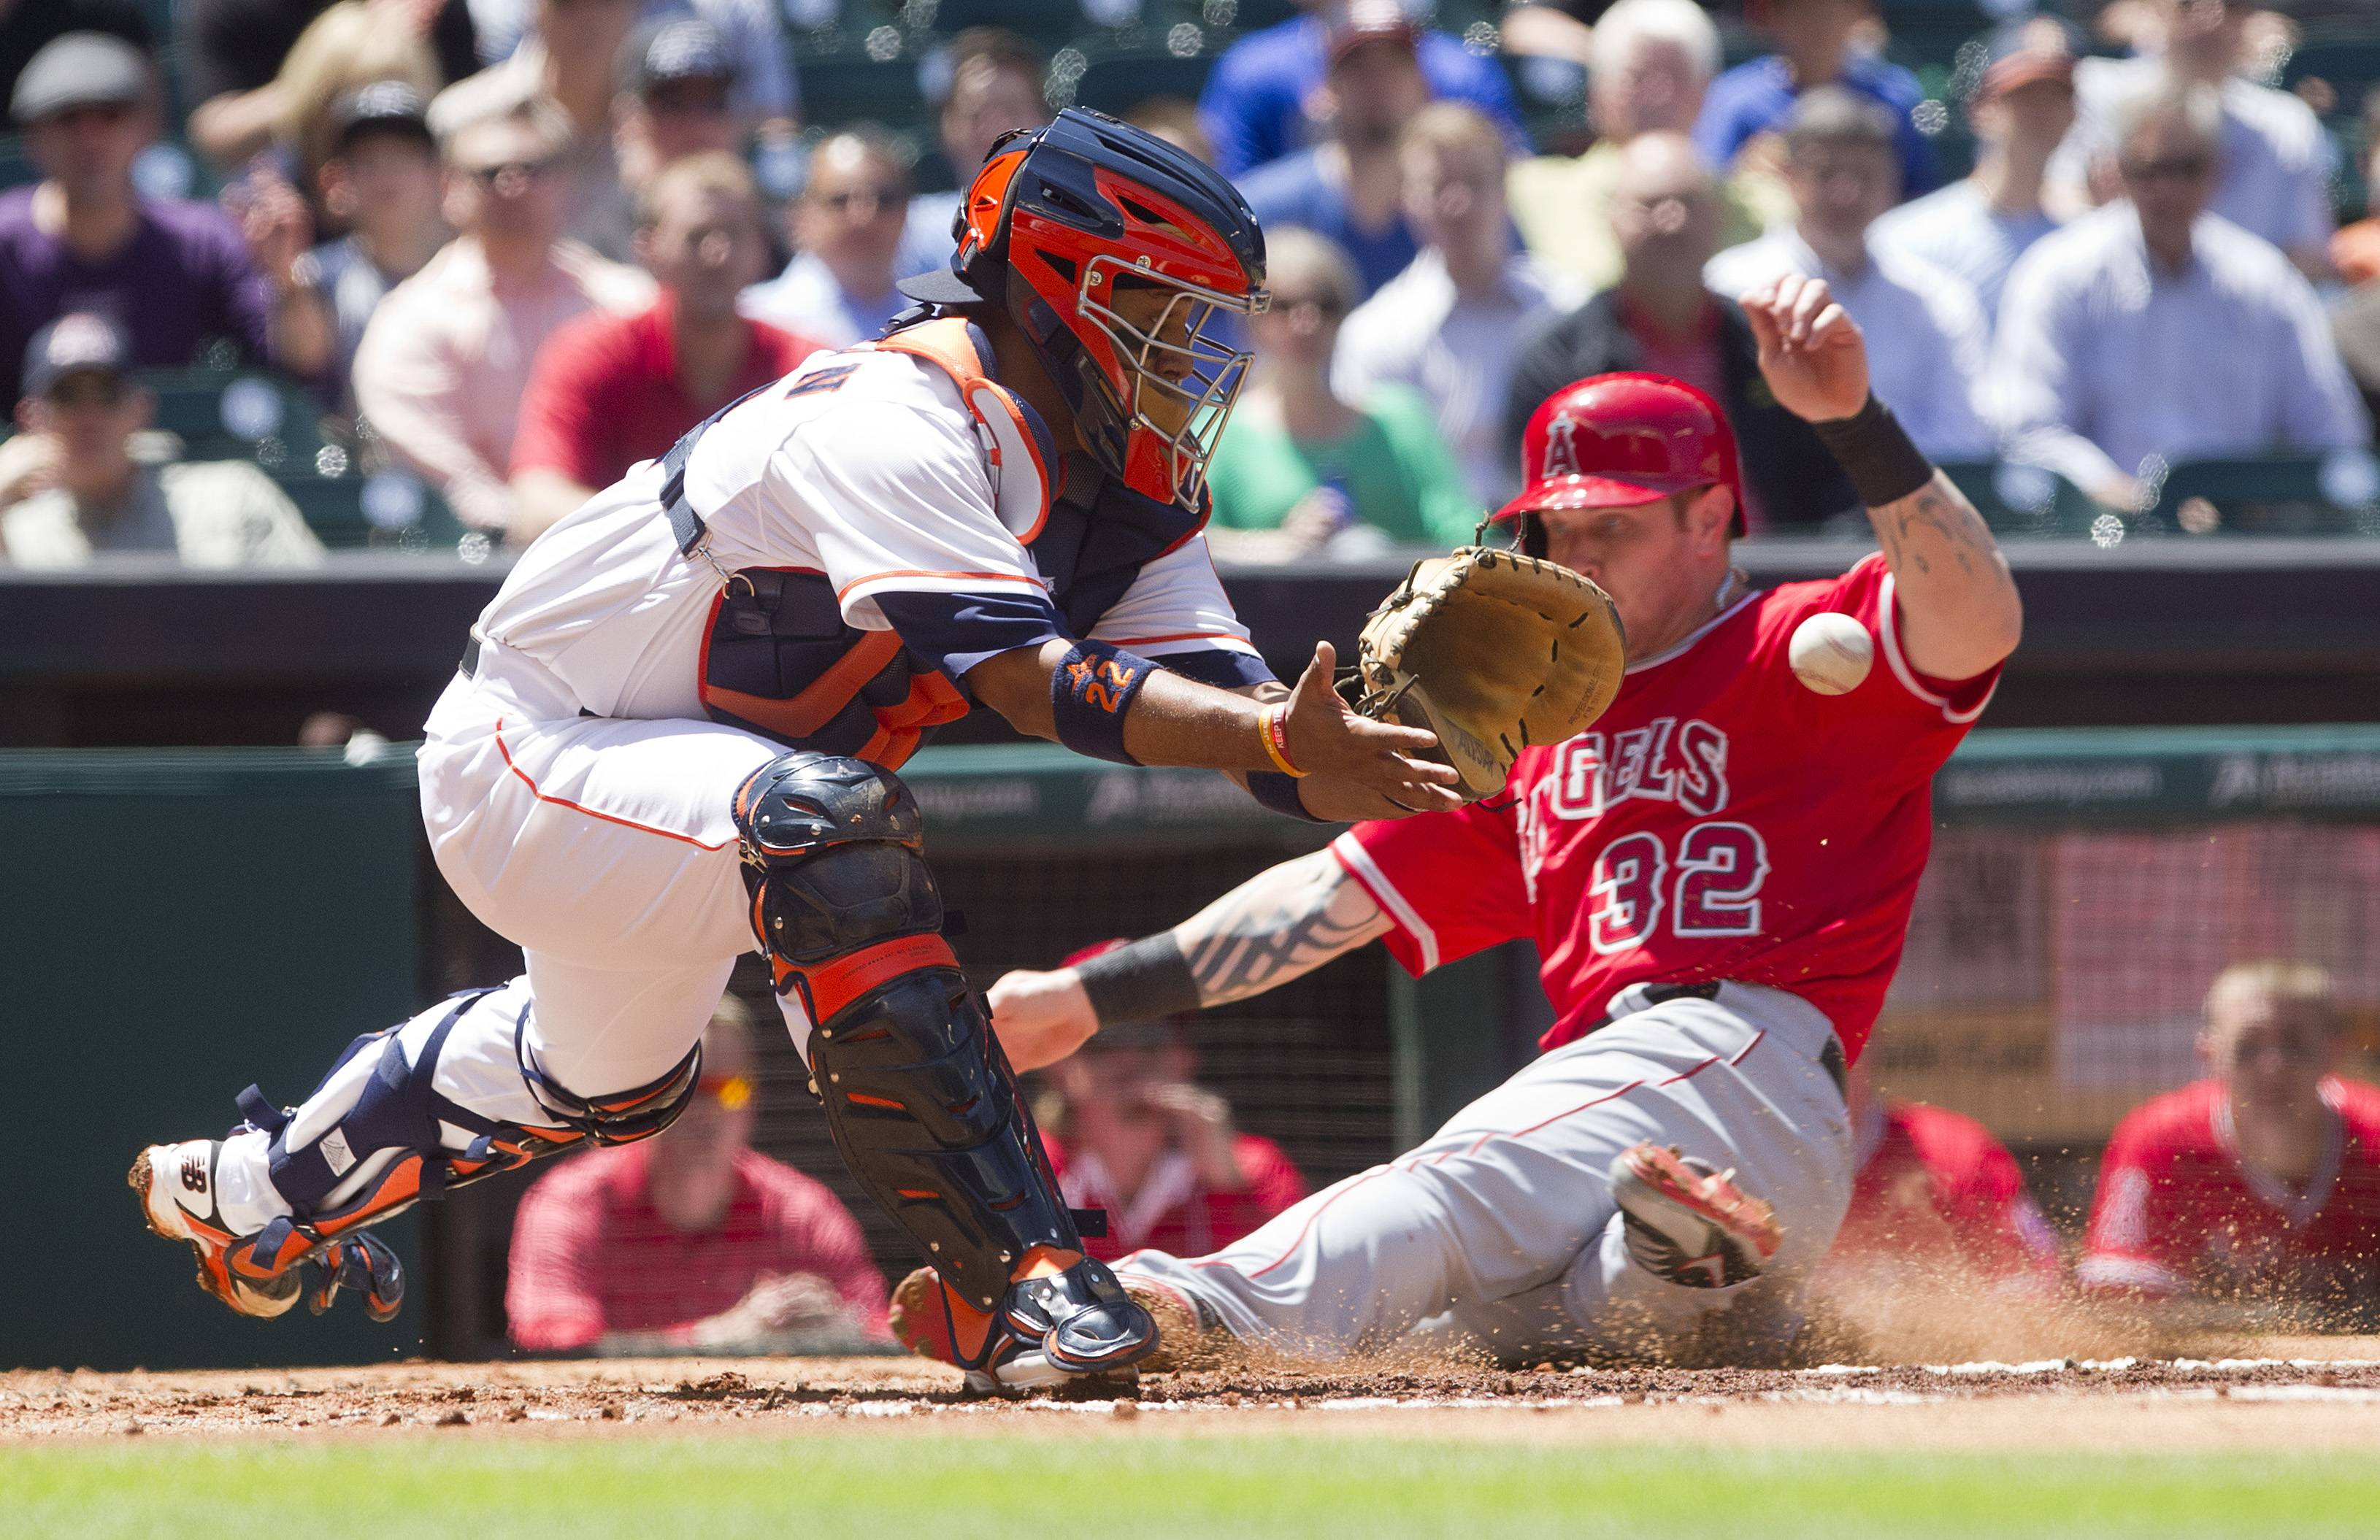 Los Angeles Angels' Josh Hamilton (32) beats the throw to Houston Astros catcher Carlos Corporan (22) for score during the first inning during a MLB America League baseball game Monday, April 7, 2014, in Houston. The Los Angeles Angels defeated the Houston Astros 9-1.